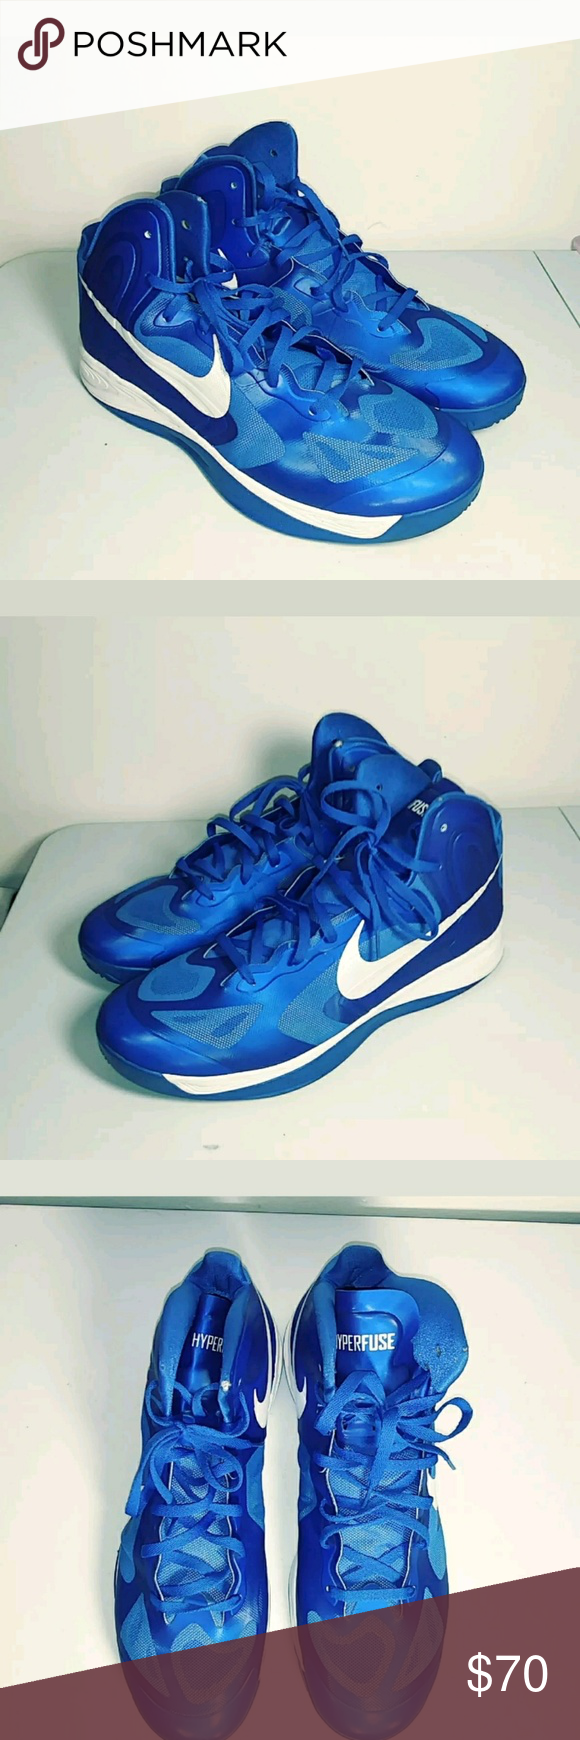 Nike Hyperfuse Men's size 17 Shoes Nike